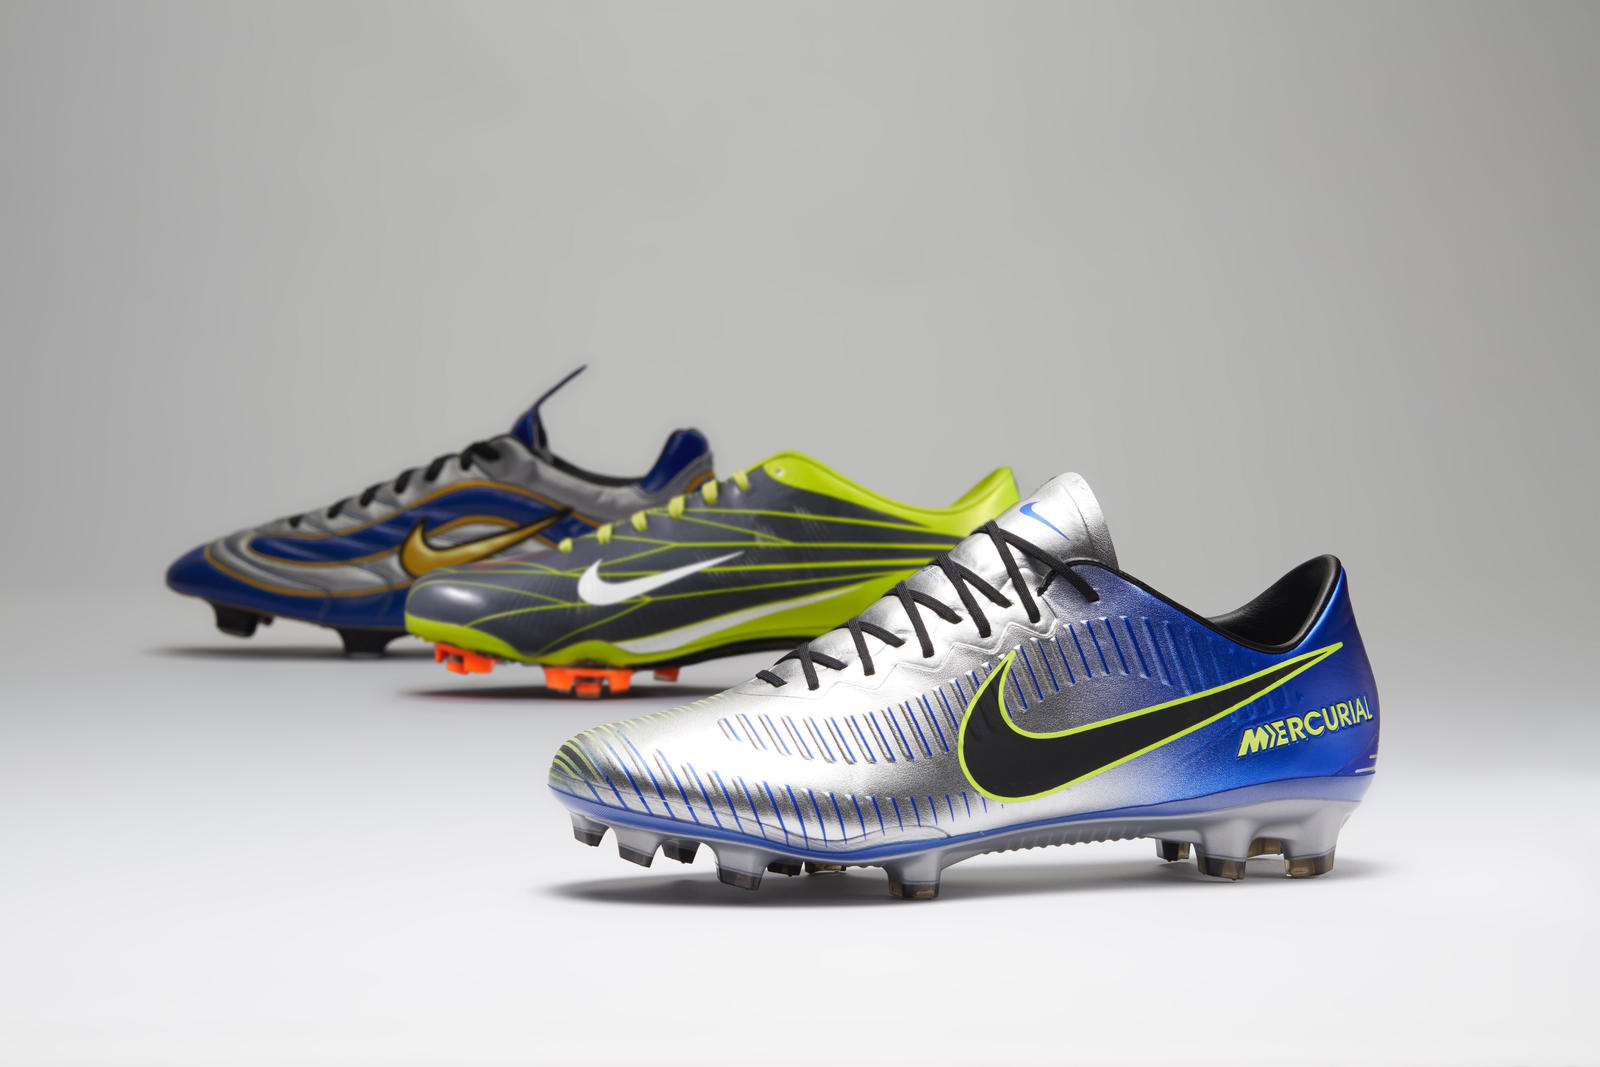 5d0f31208 The Mercurial Puro Fenomeno Pays Homage to Ronaldo and Neymar Jr ...